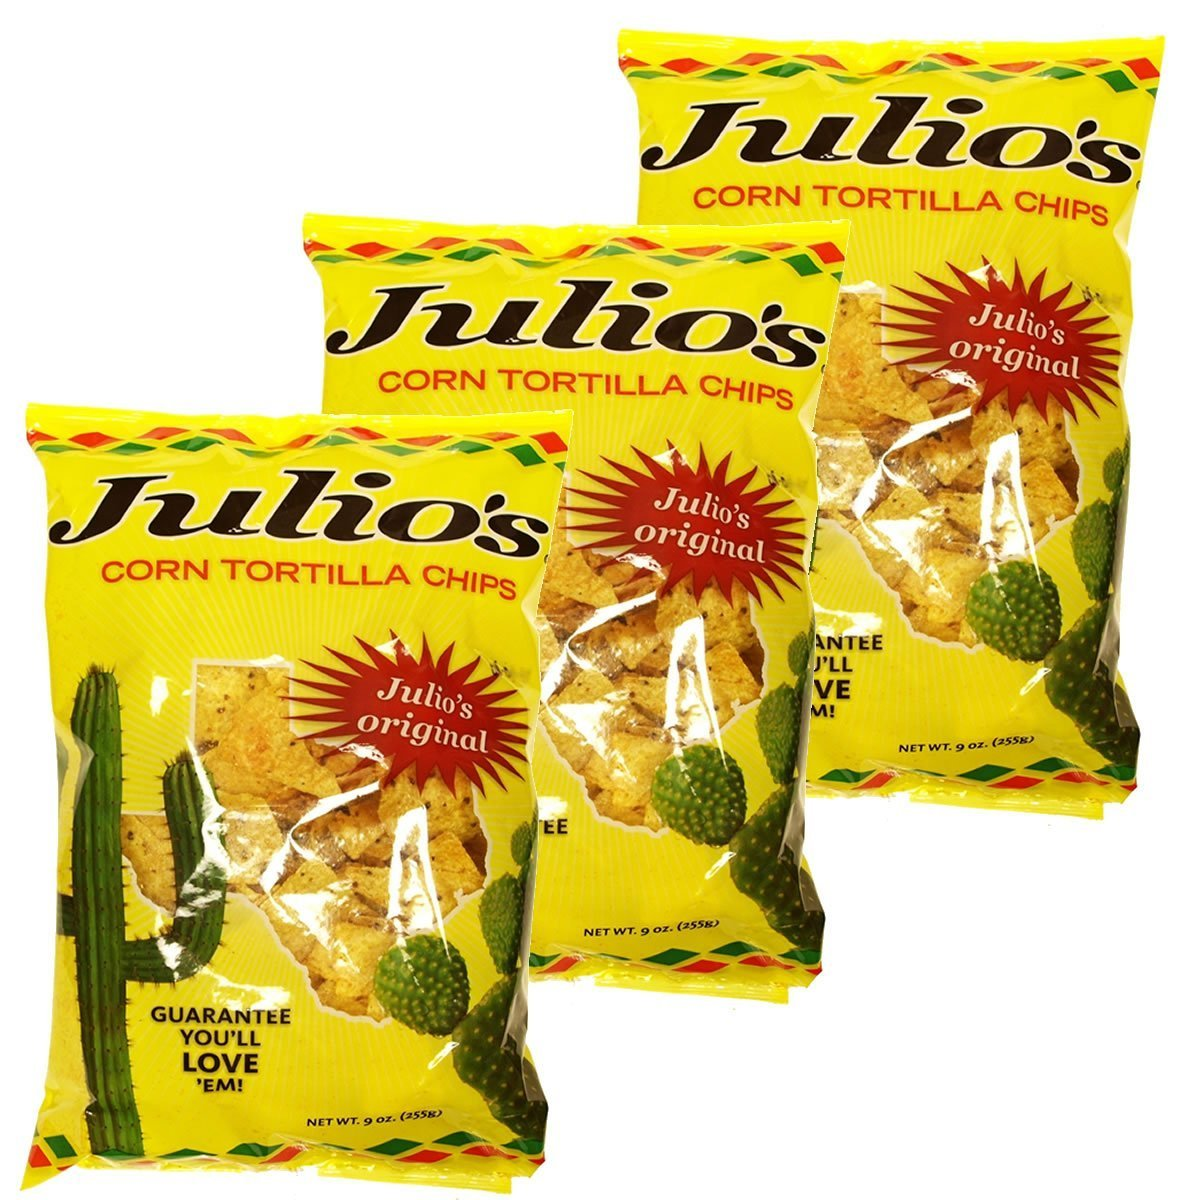 Julio's Corn Tortilla Chips - Three 9 oz Bags - Chips Covered In Julio's Seasoning - Perfect For Nachos - Great Tex-Mex Taste by Julio's